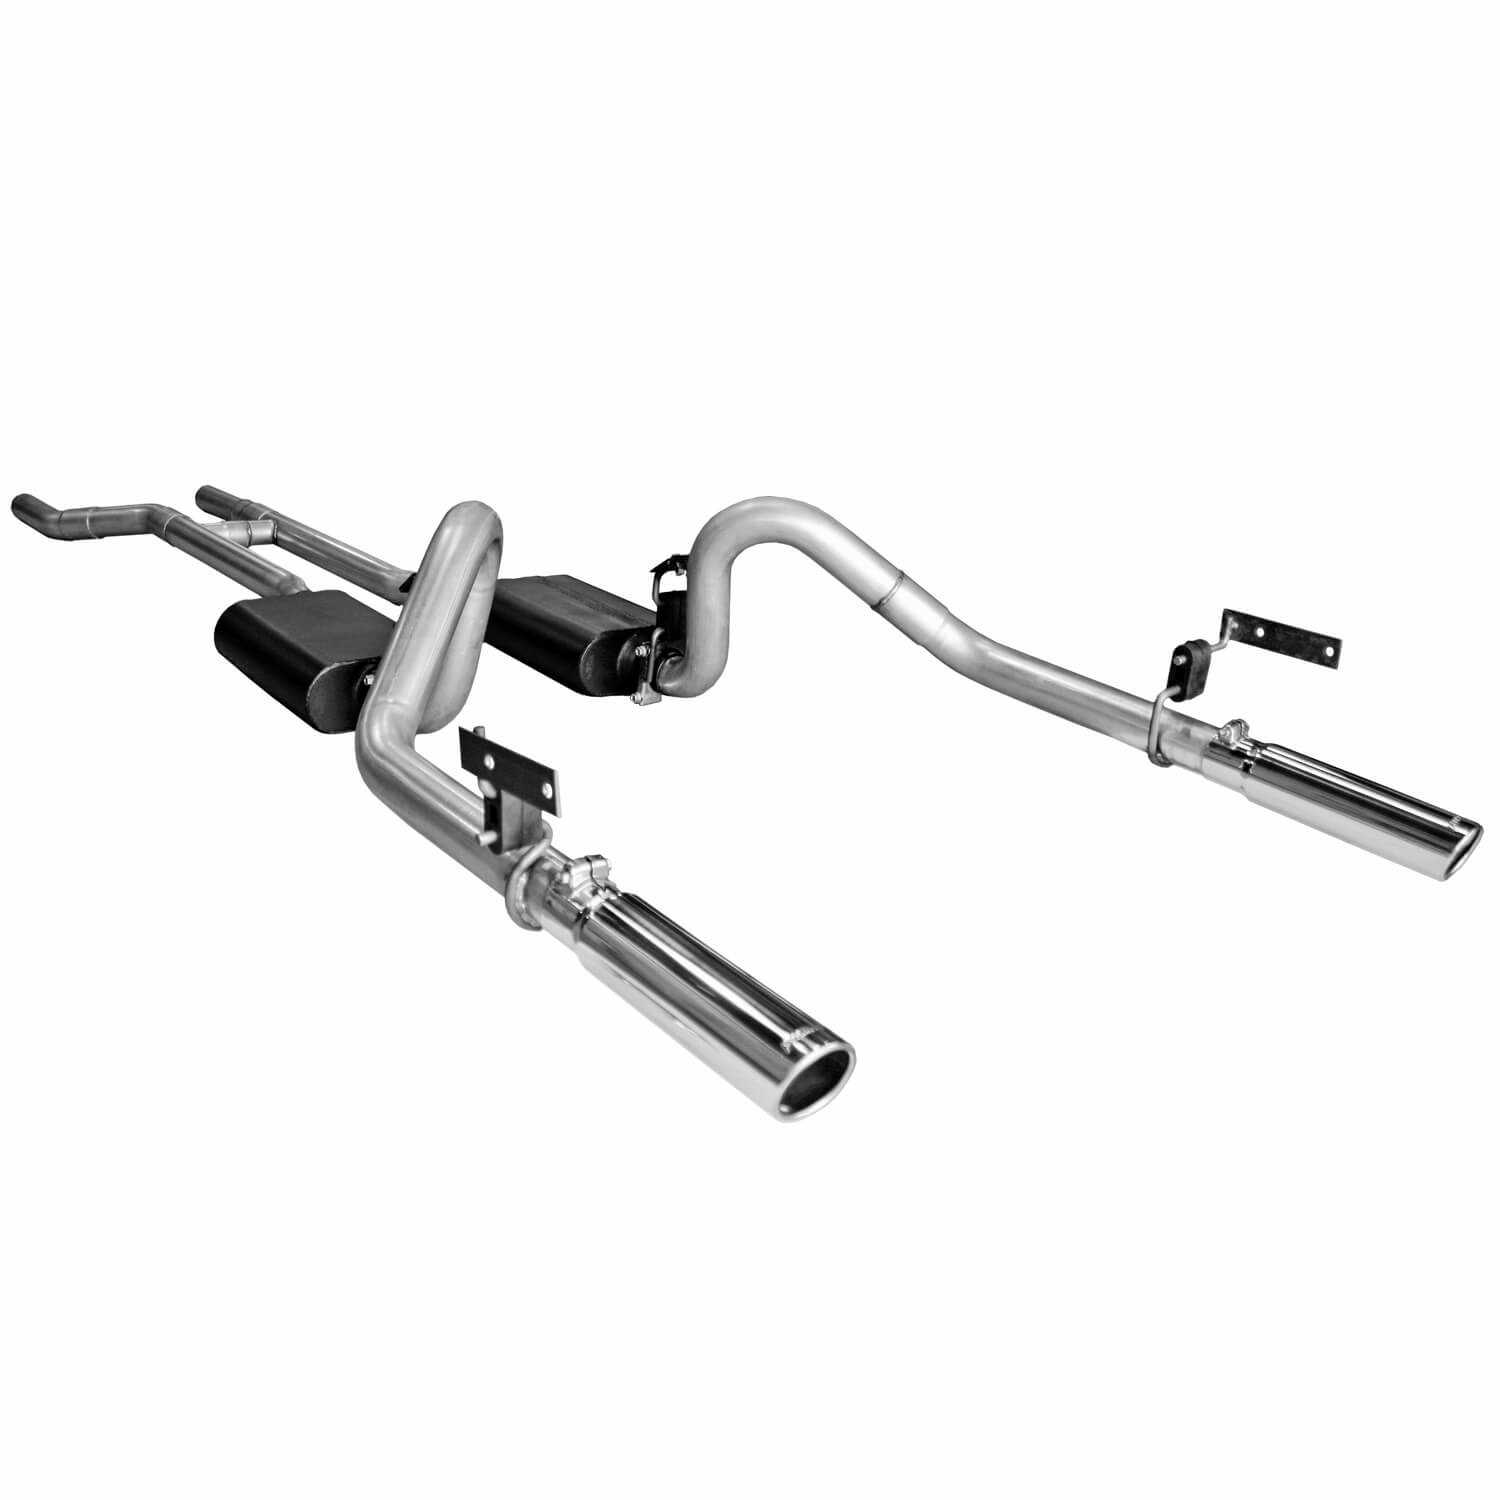 17281 Flowmaster American Thunder Downpipe Back Exhaust System